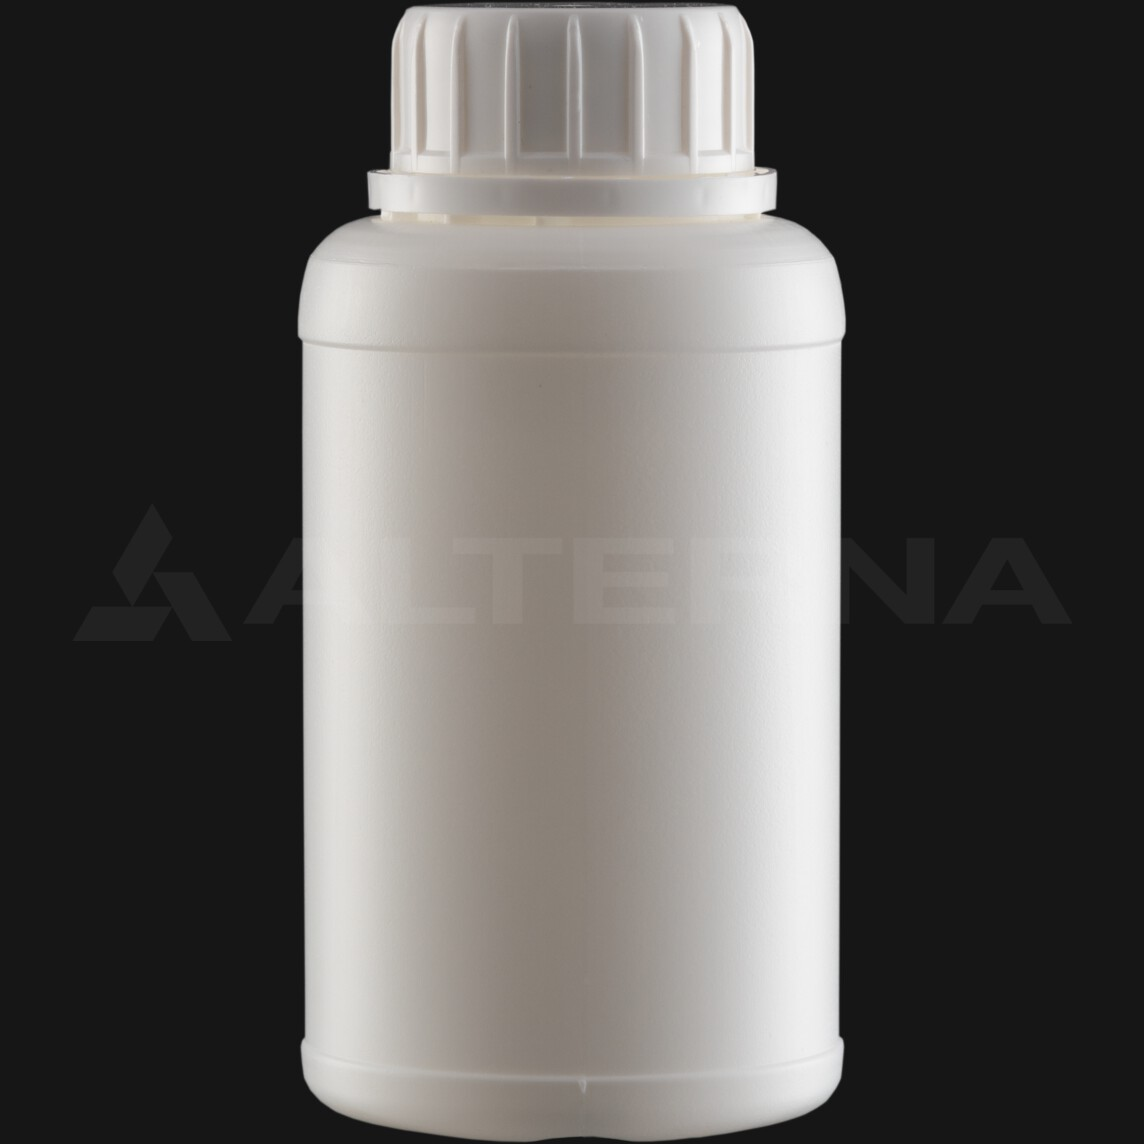 250 ml HDPE Bottle with 38 mm Foam Seal Secure Cap